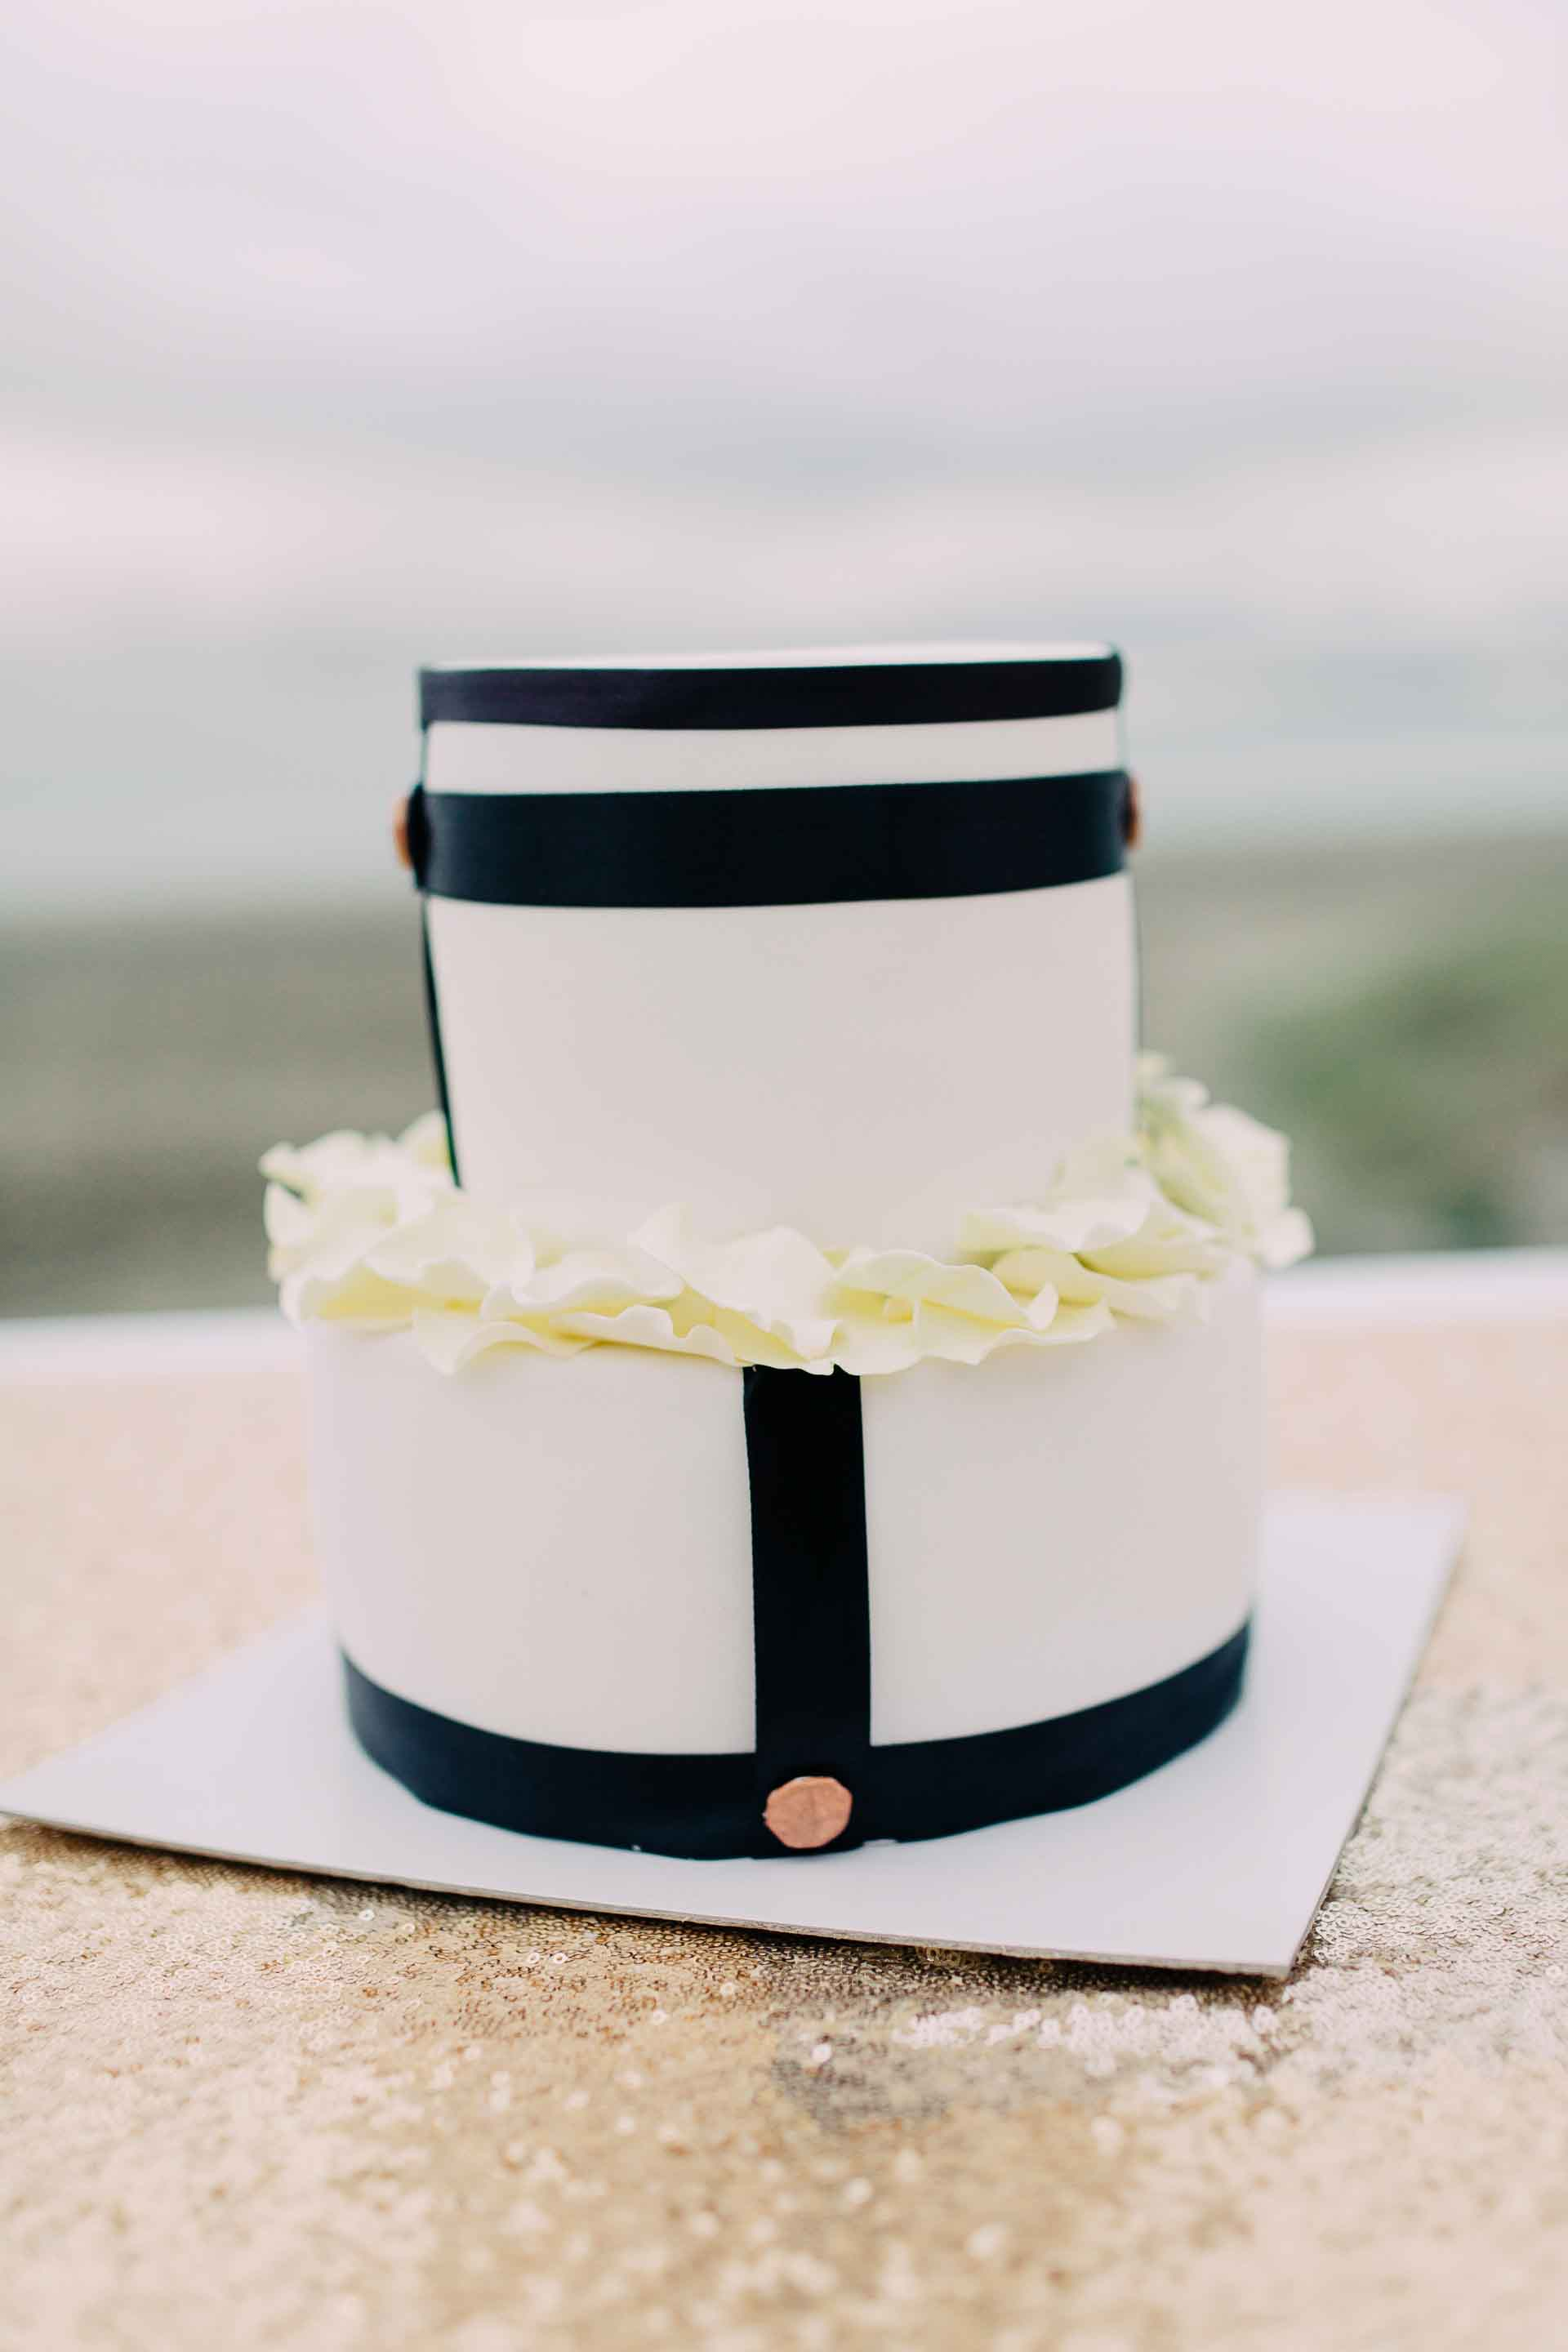 Classic and timeless black and white wedding cake for this Fiji wedding.